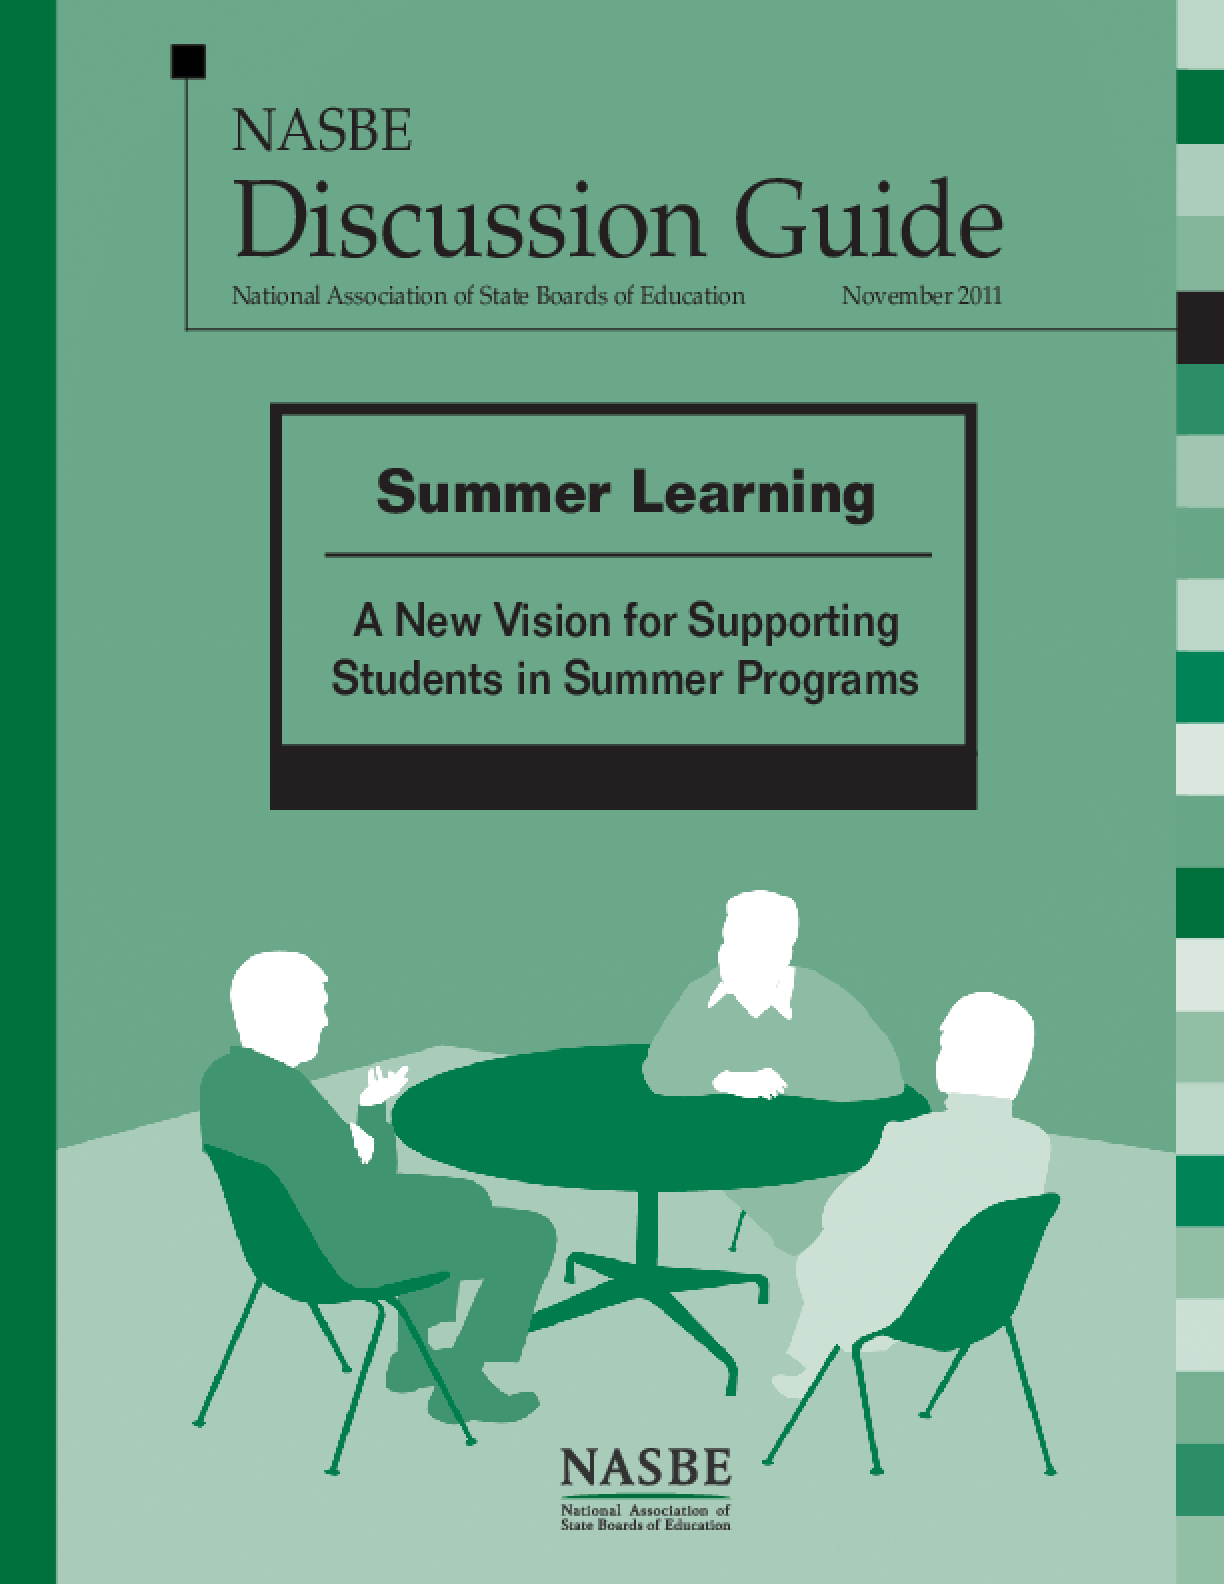 Summer Learning: A New Vision for Supporting Students in Summer Programs